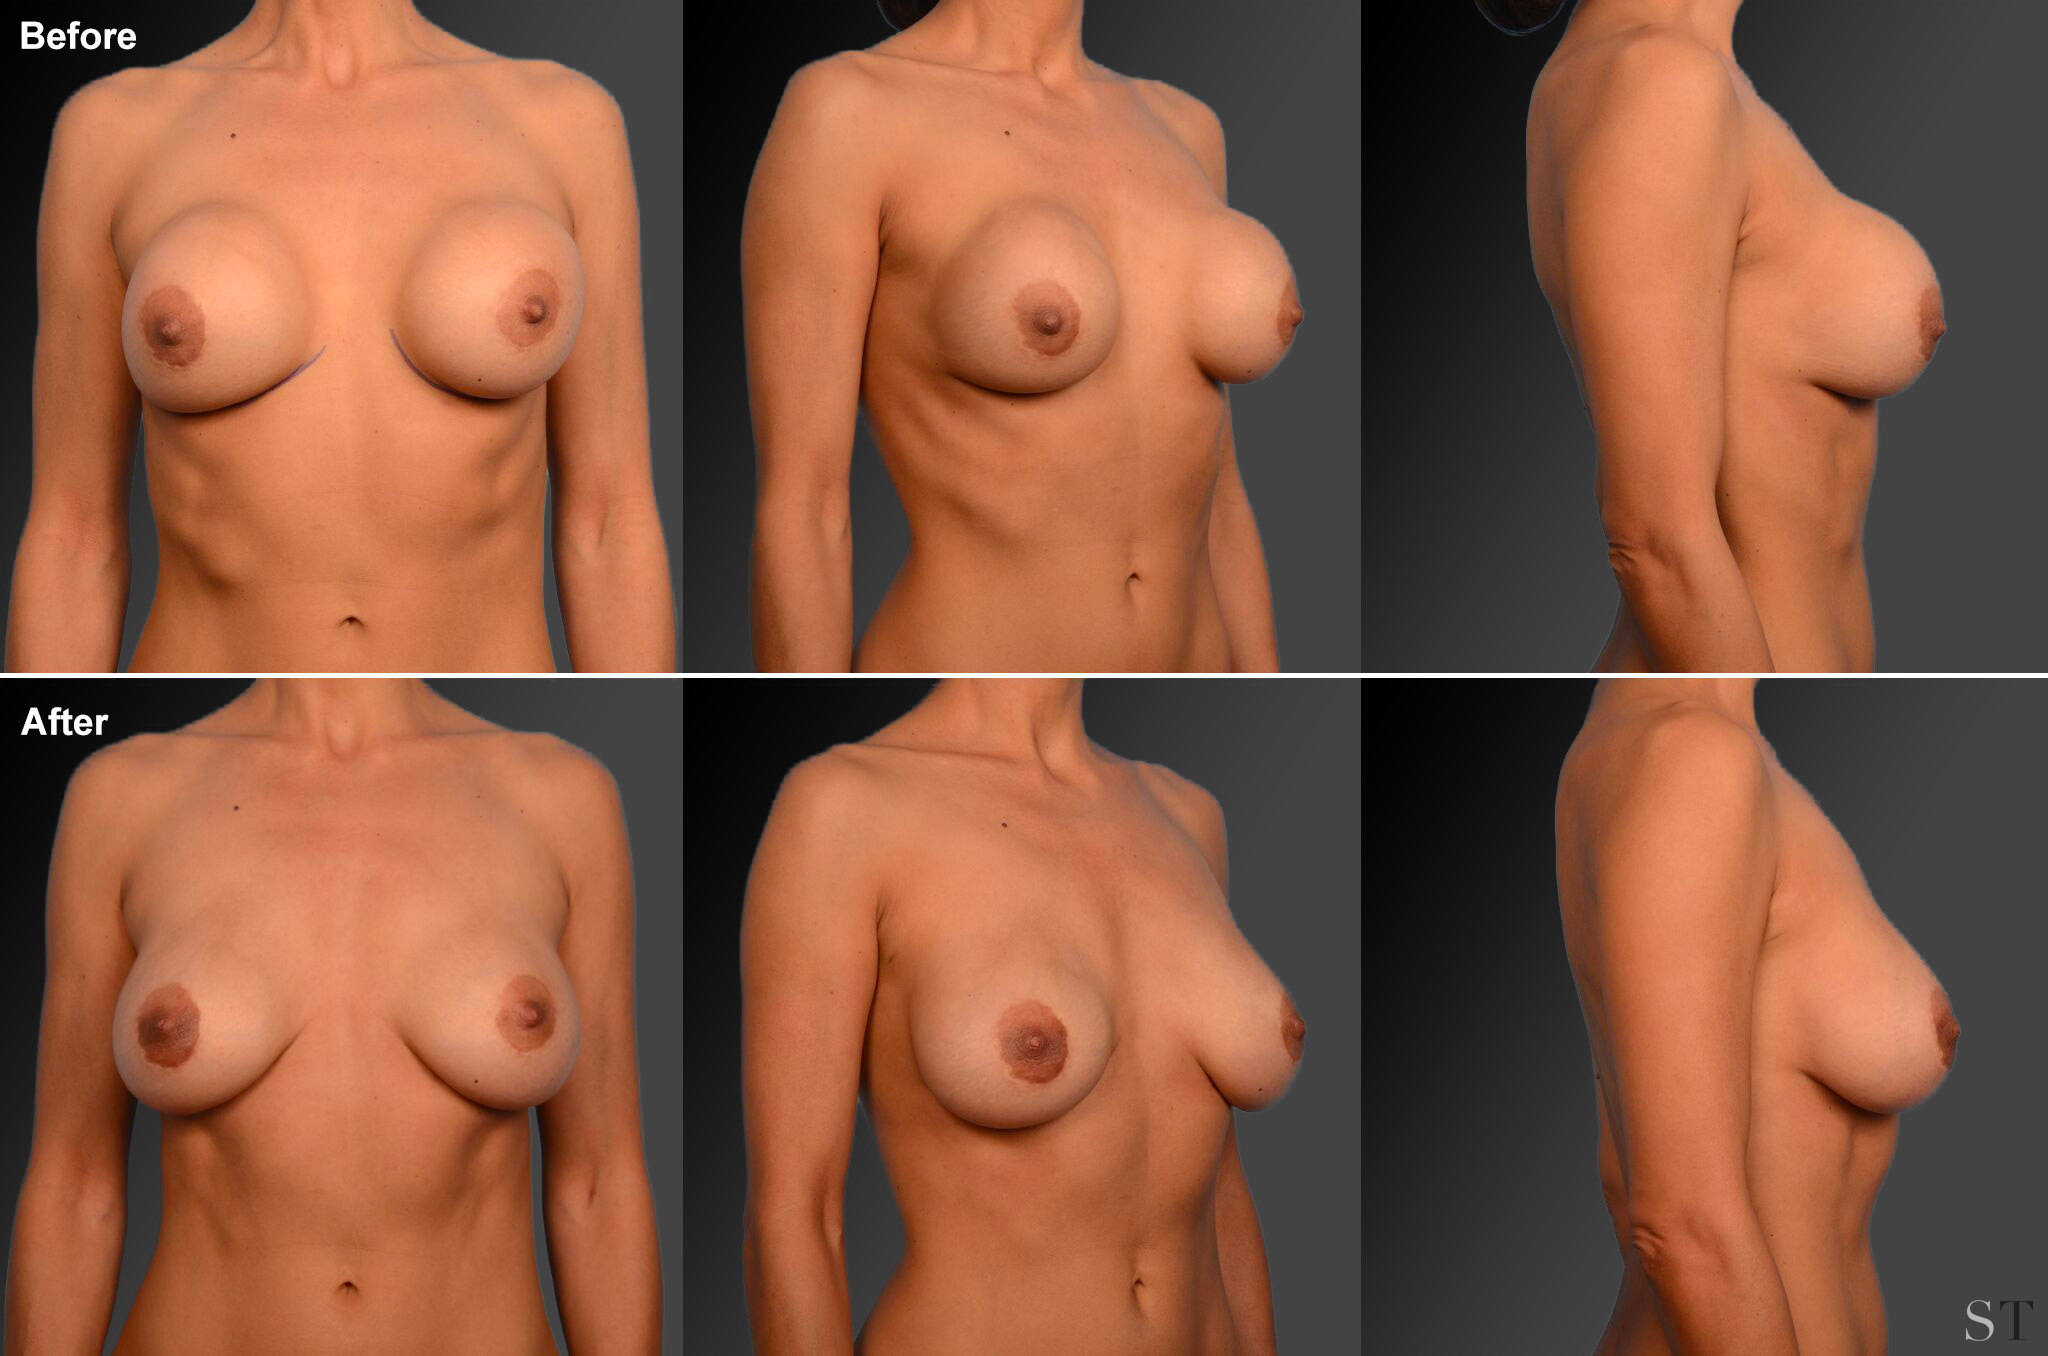 Capsular Contracture Before & After 31